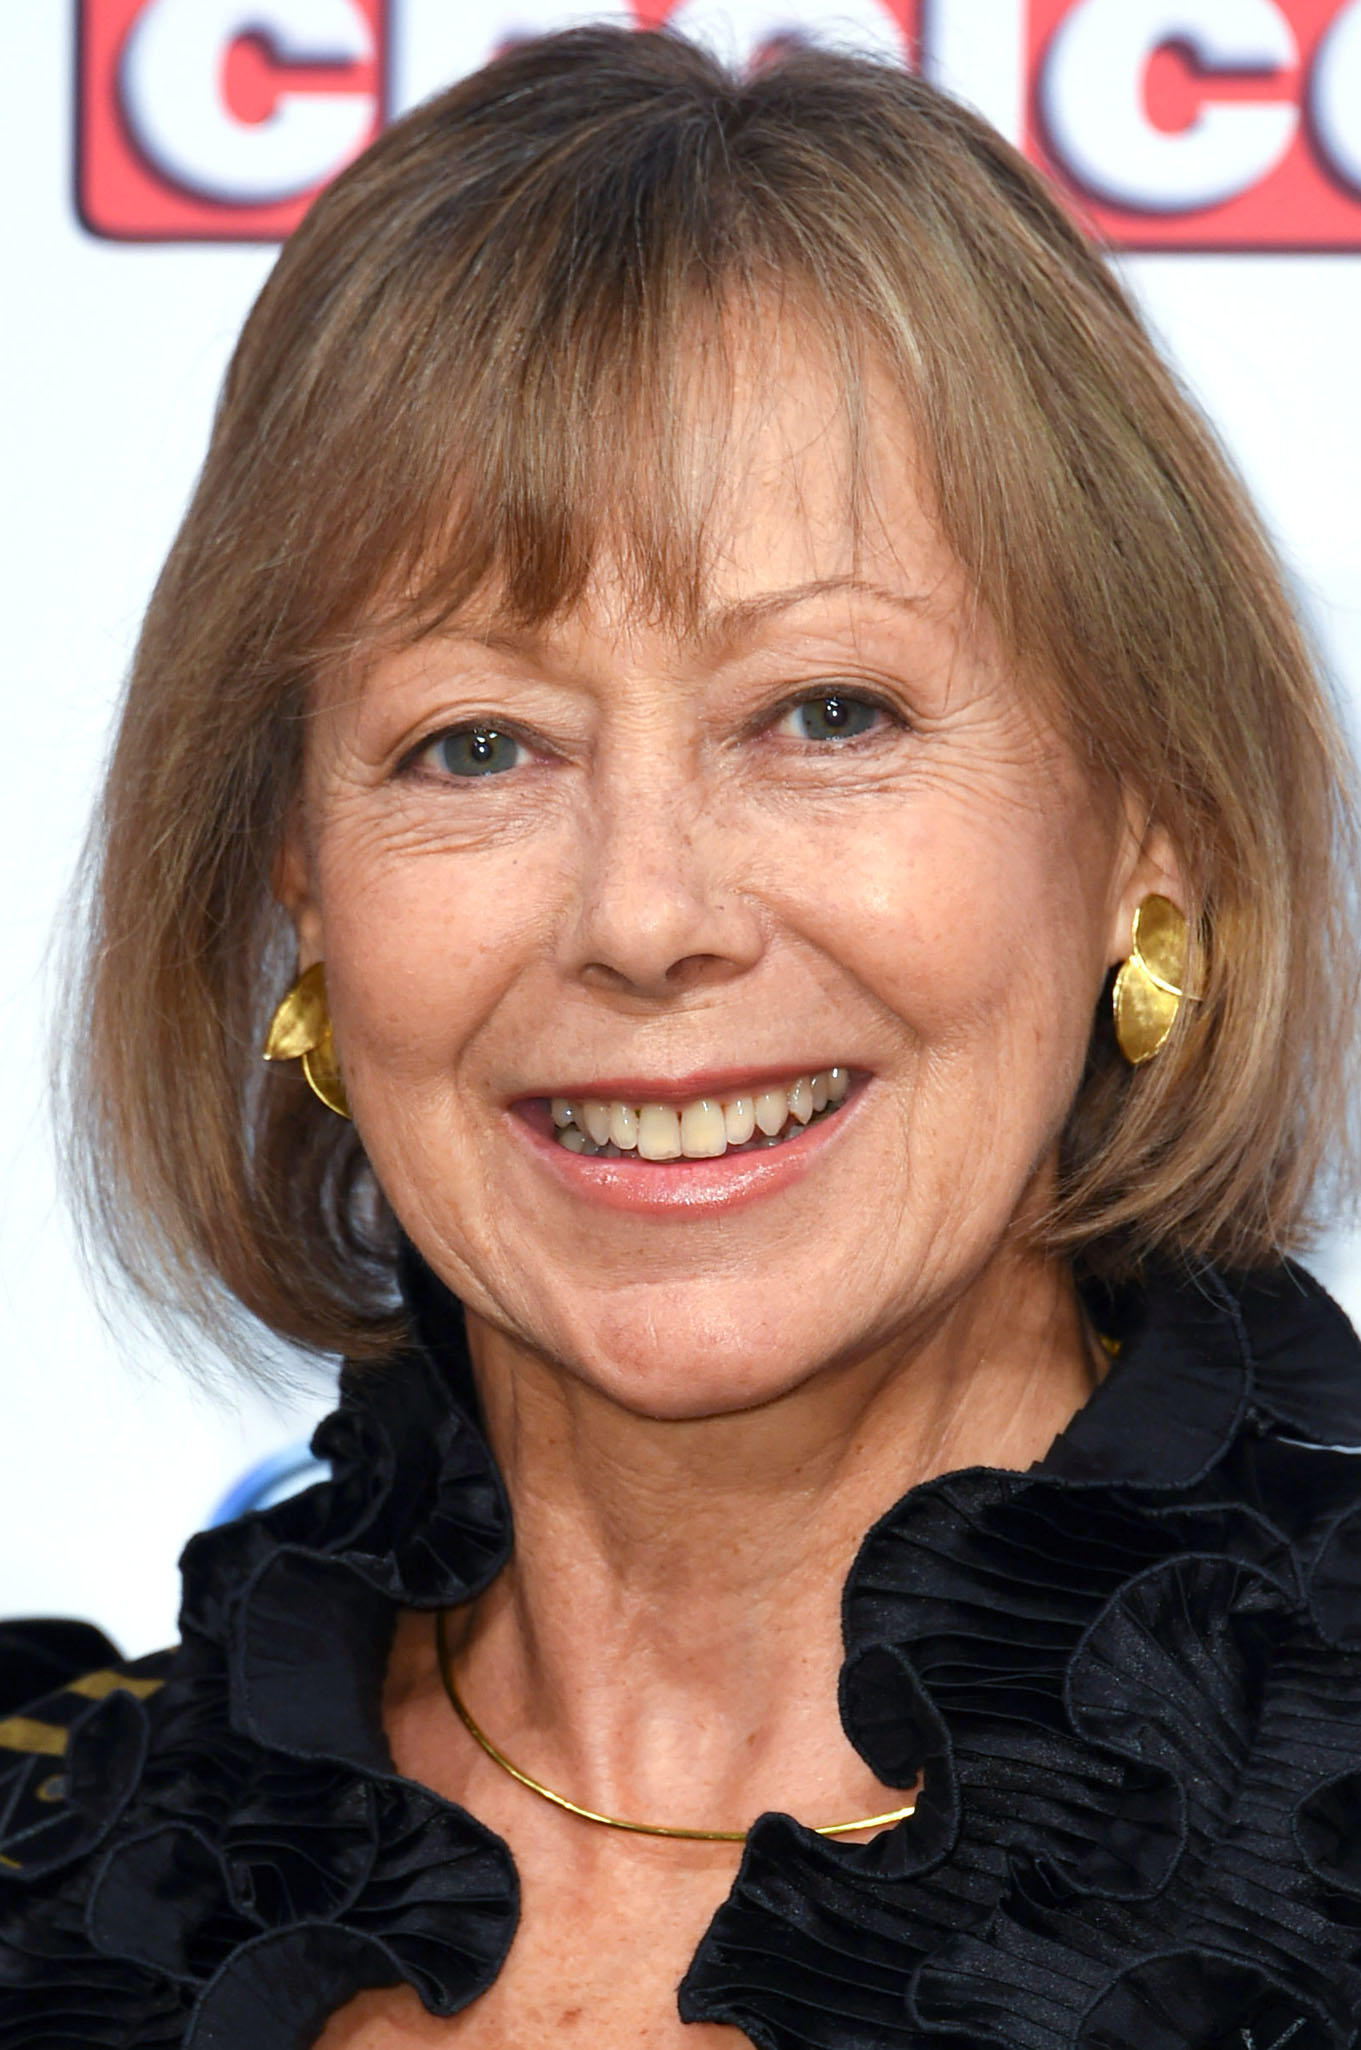 Jenny Agutter at the TV Choice Awards 2019 in London.